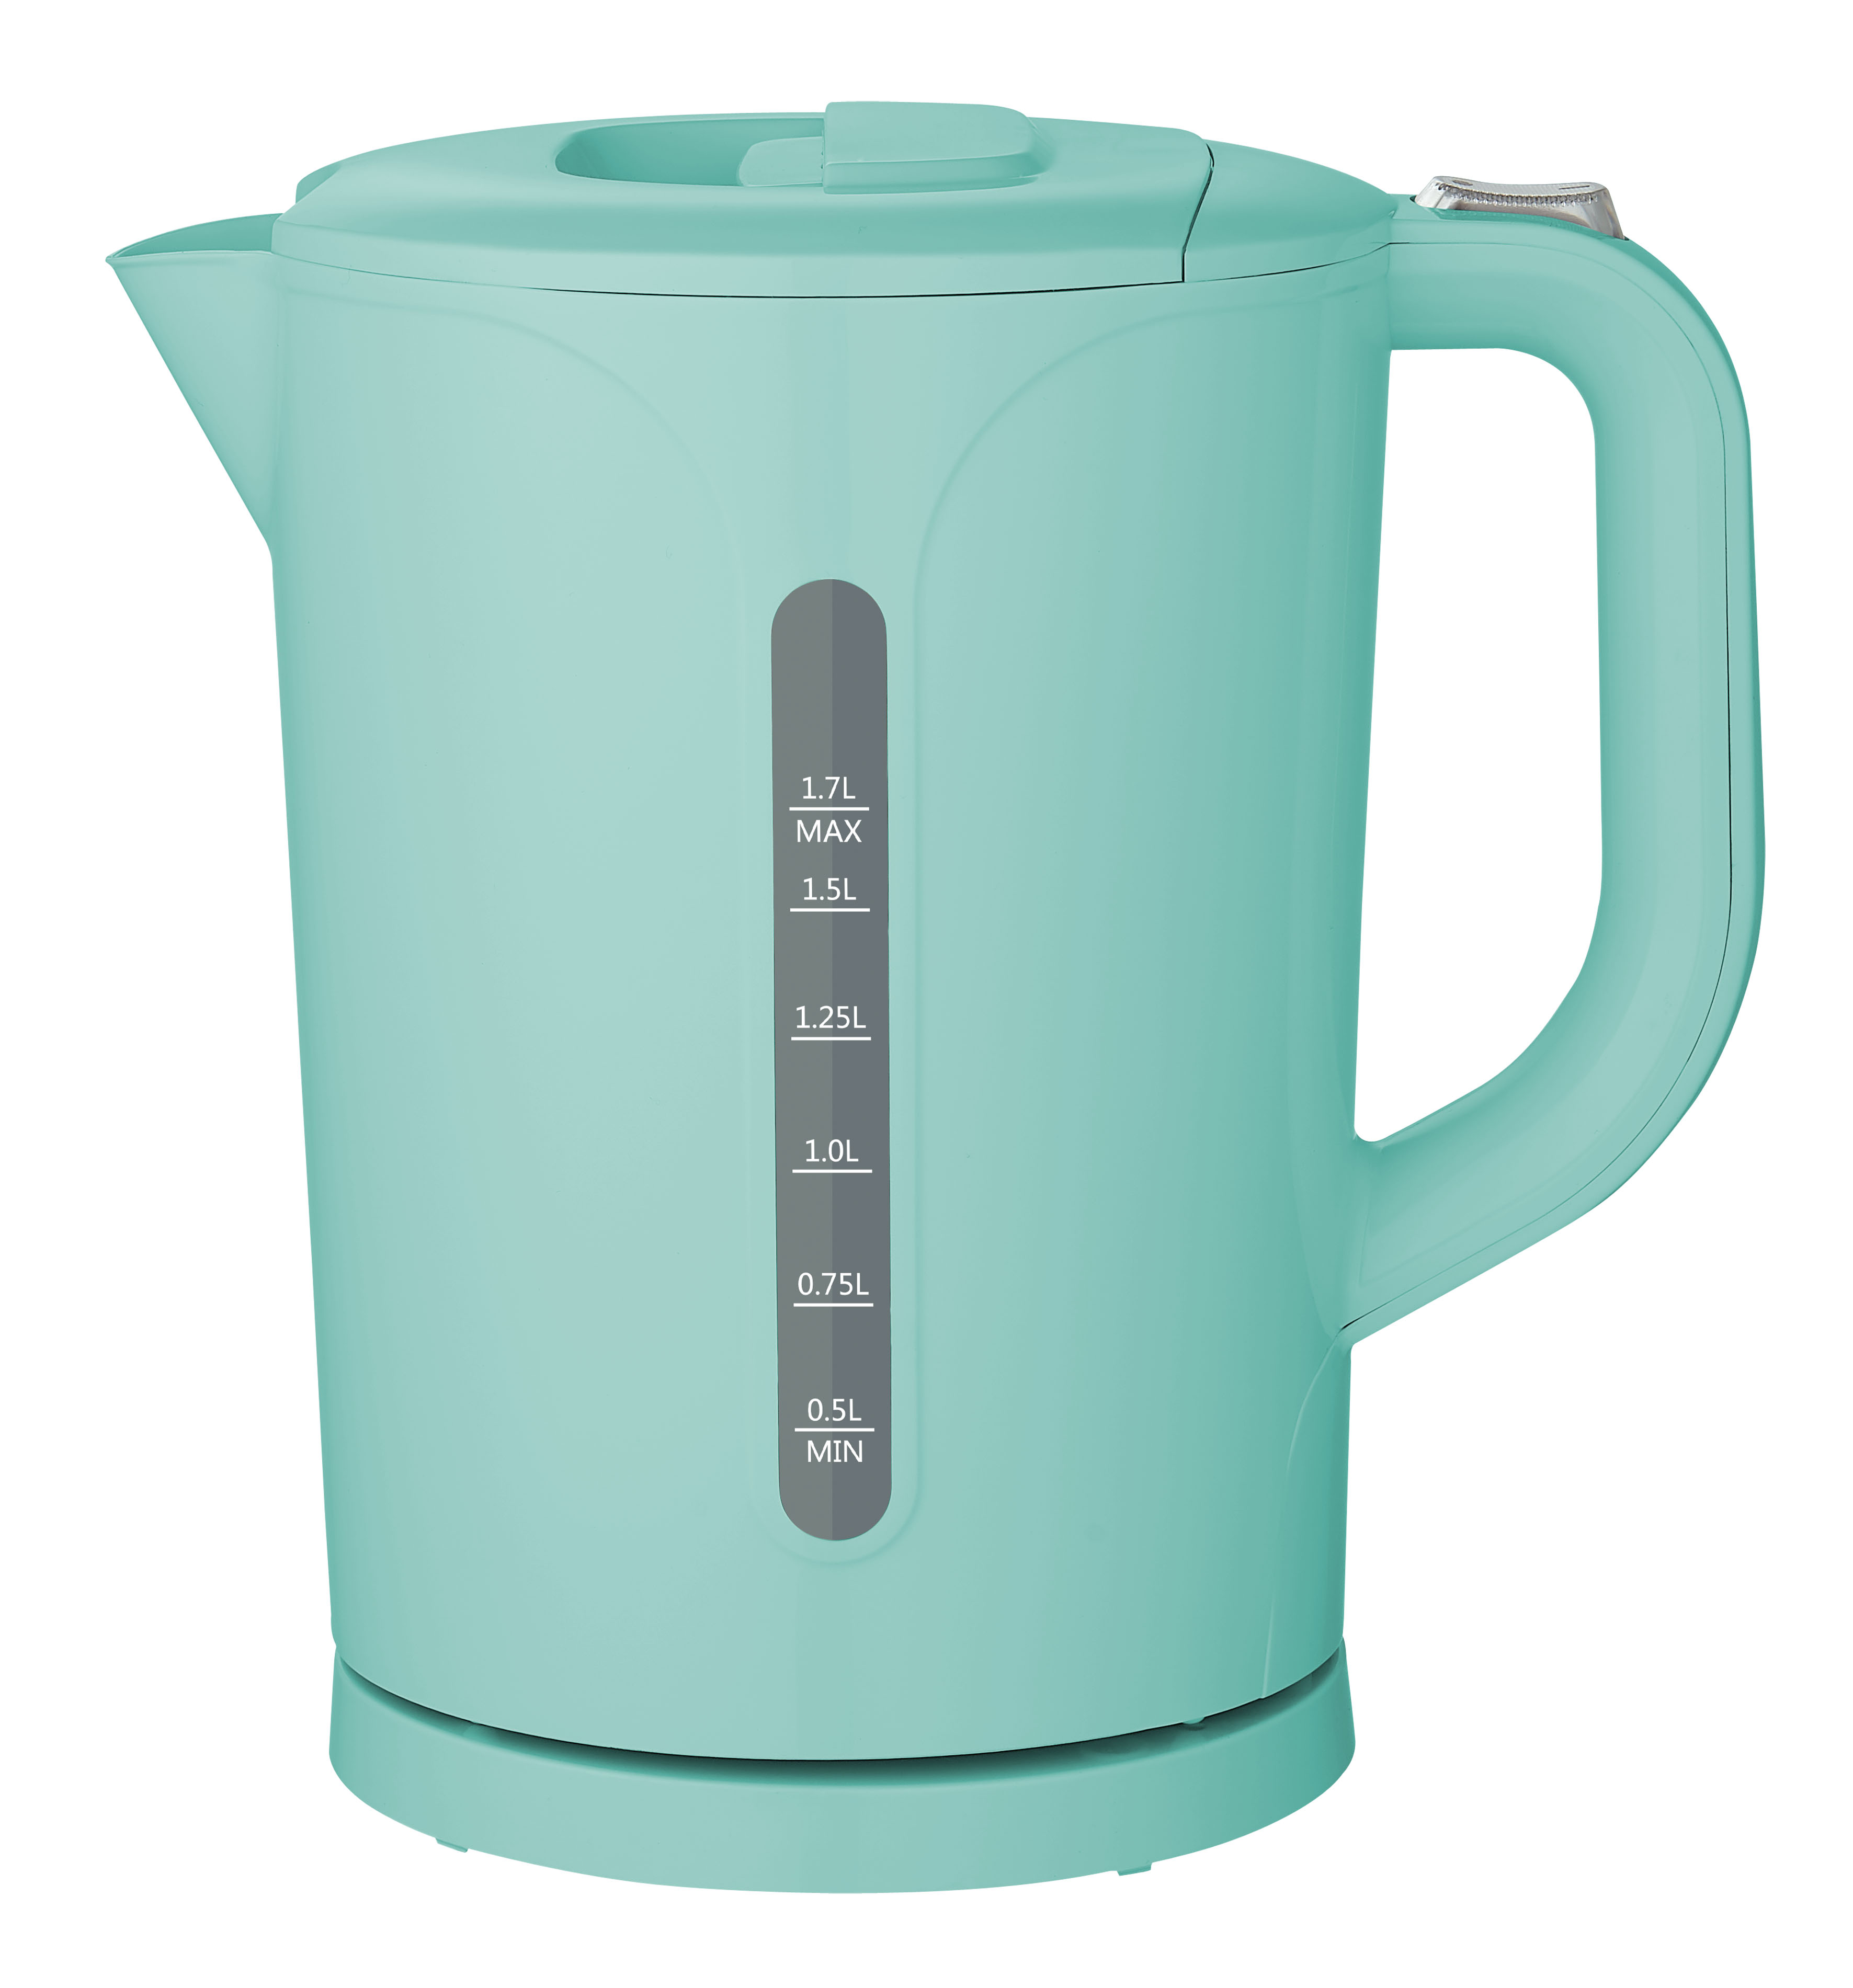 Mainstays 1.7 Liter Plastic Electric Kettle, Mint